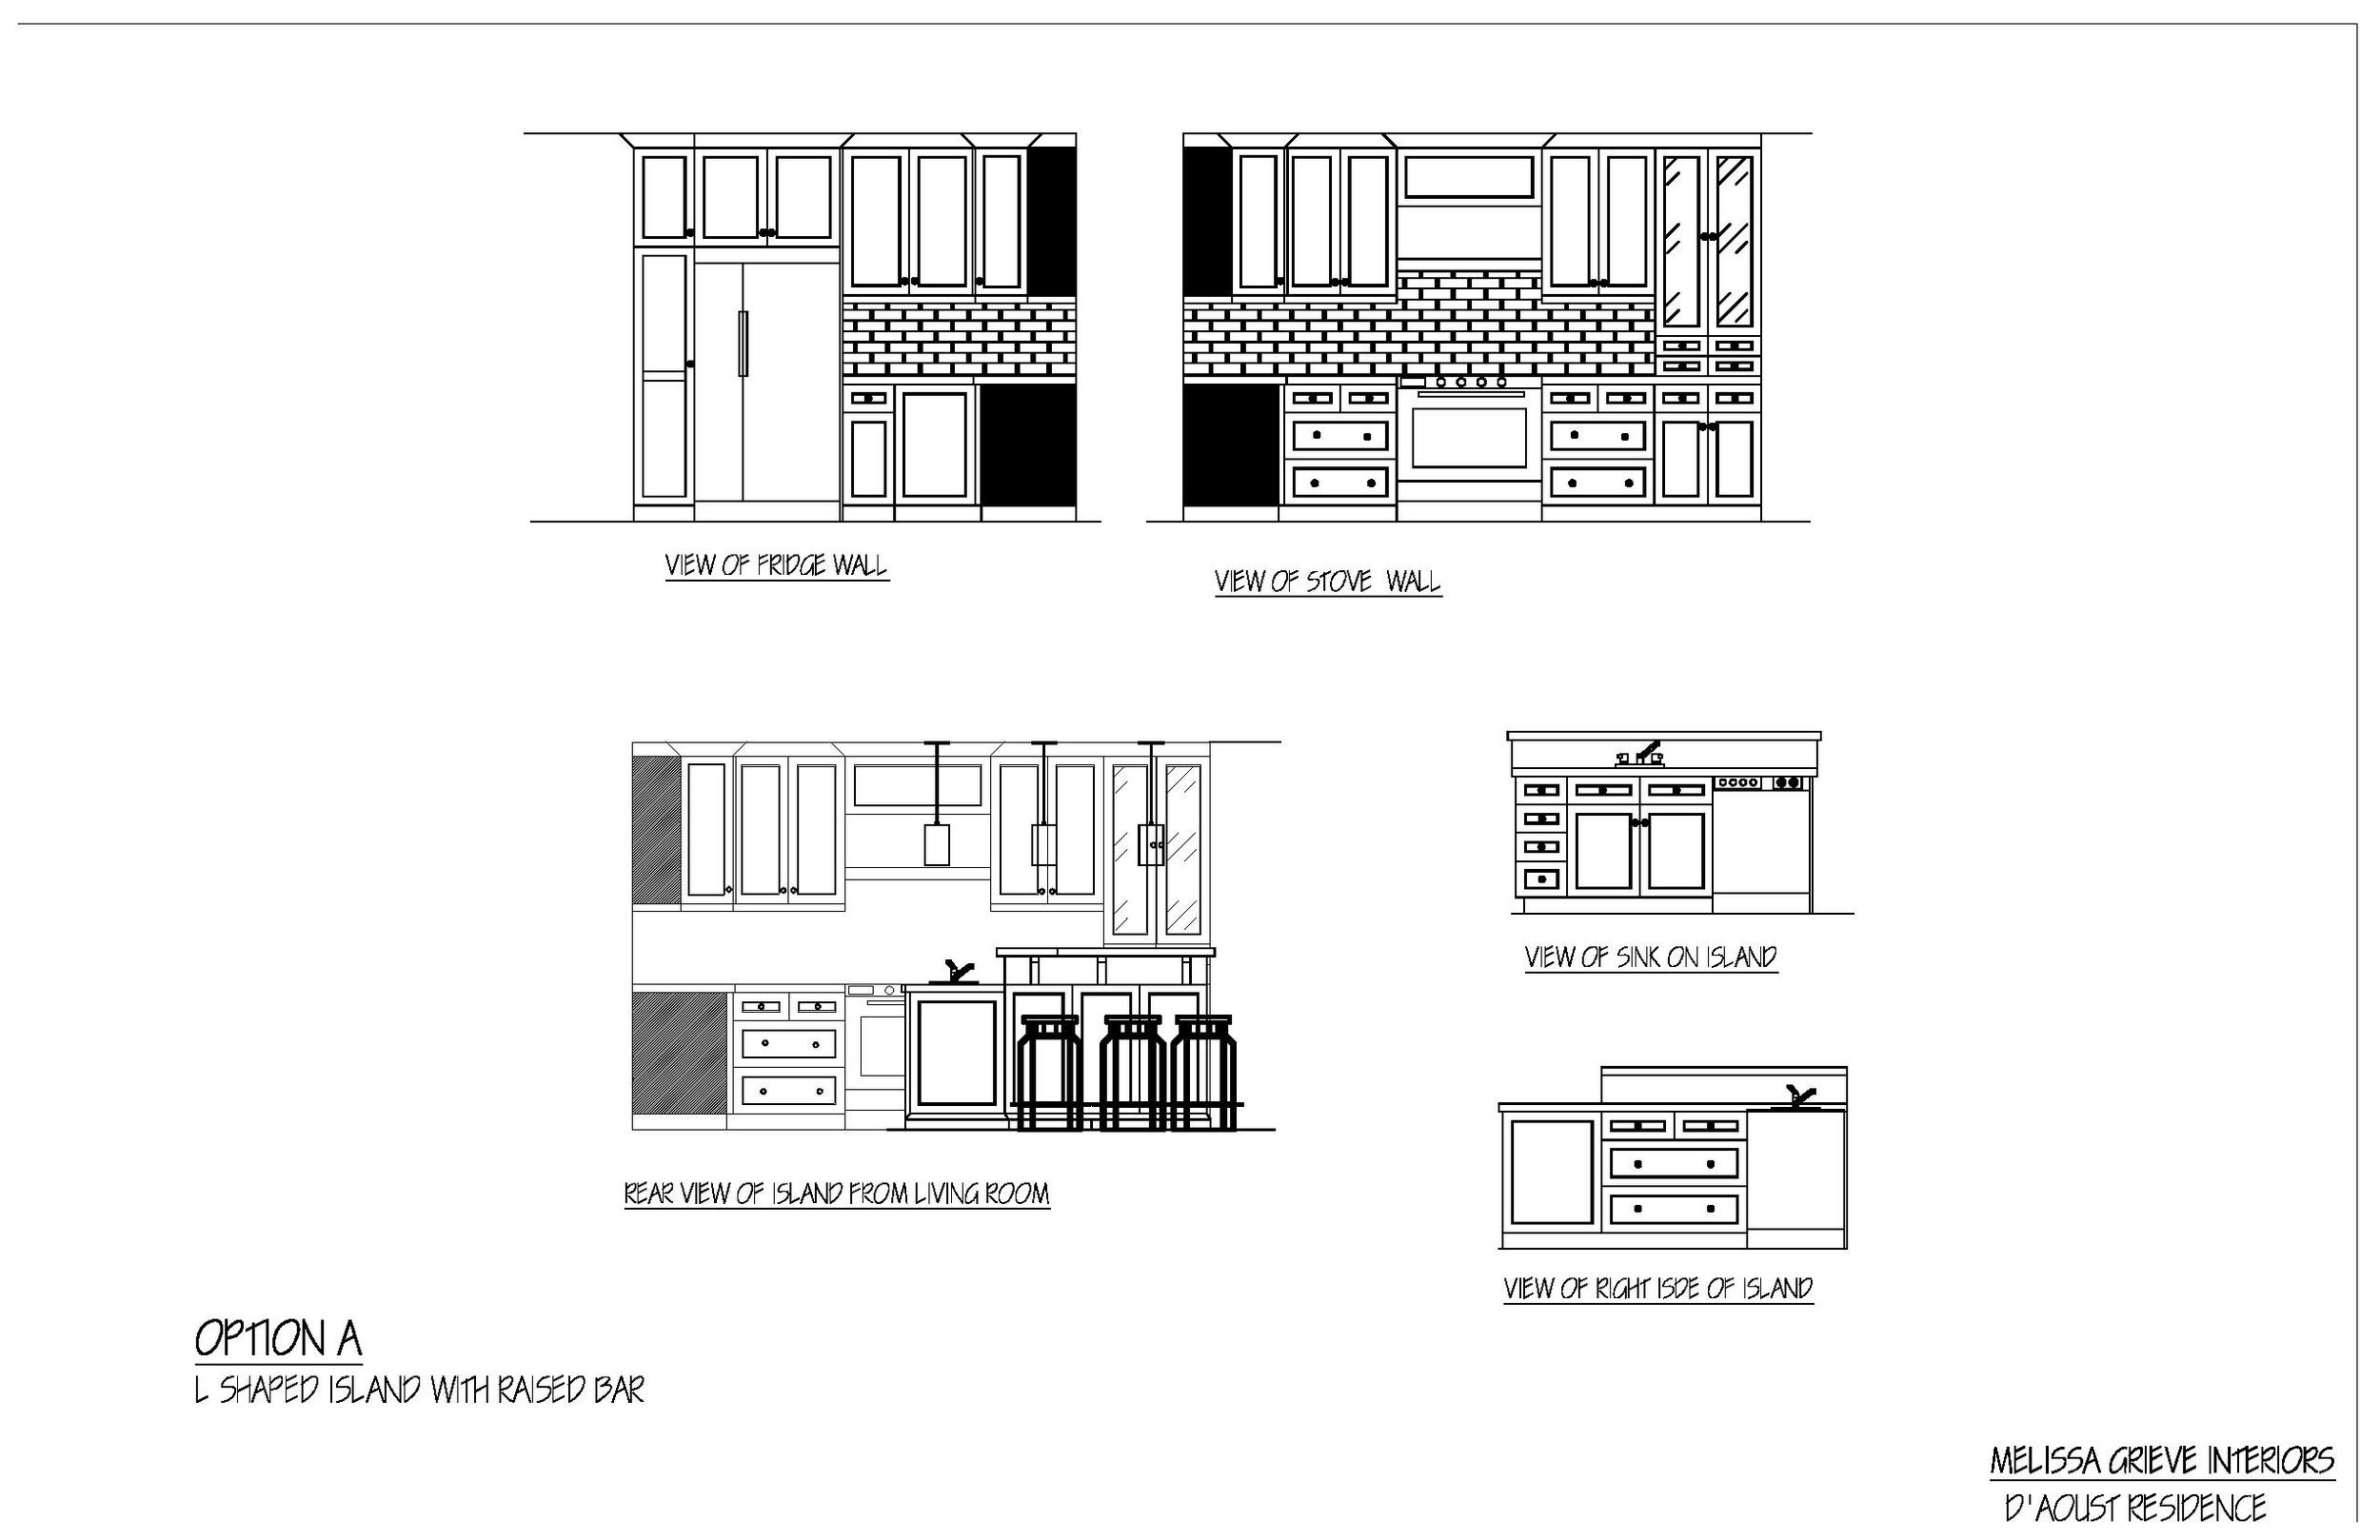 kitchen design elevations option a